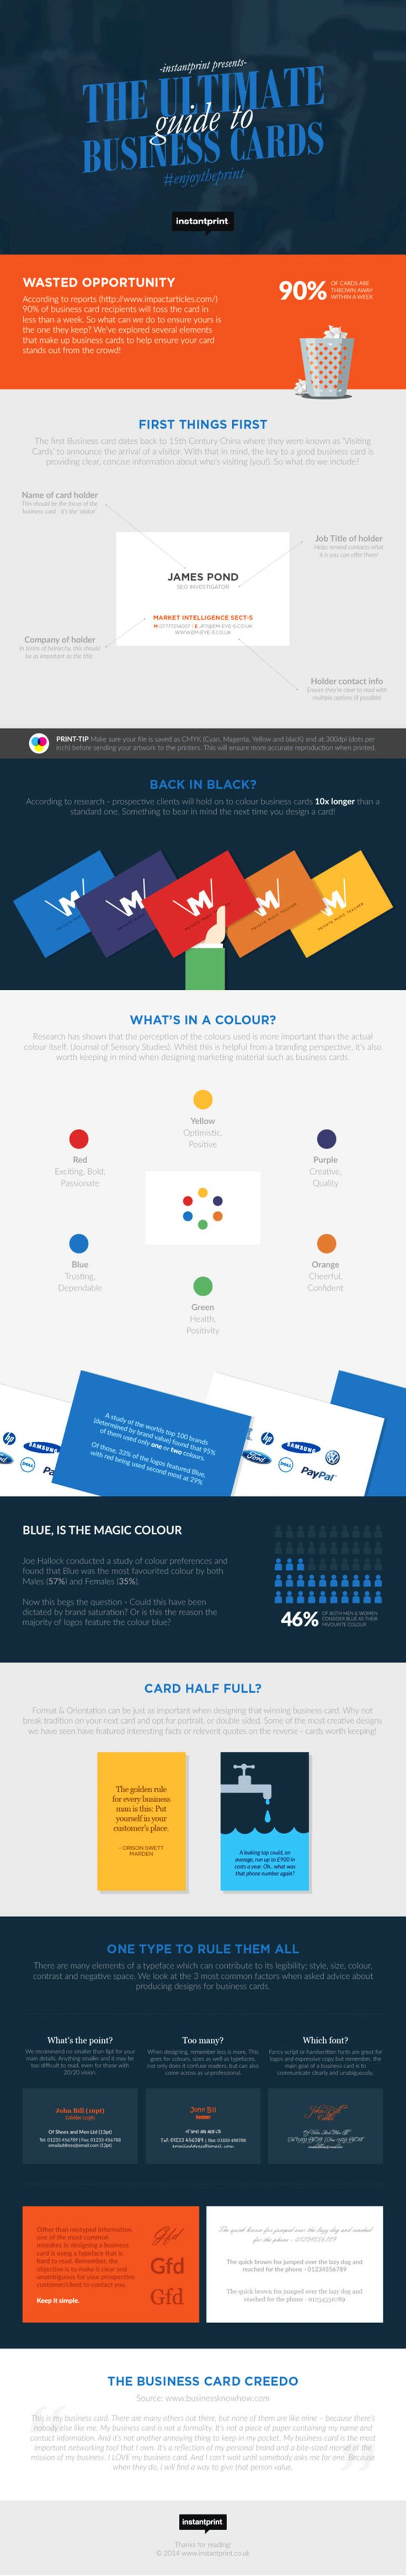 27 best graphic design infographics images on pinterest